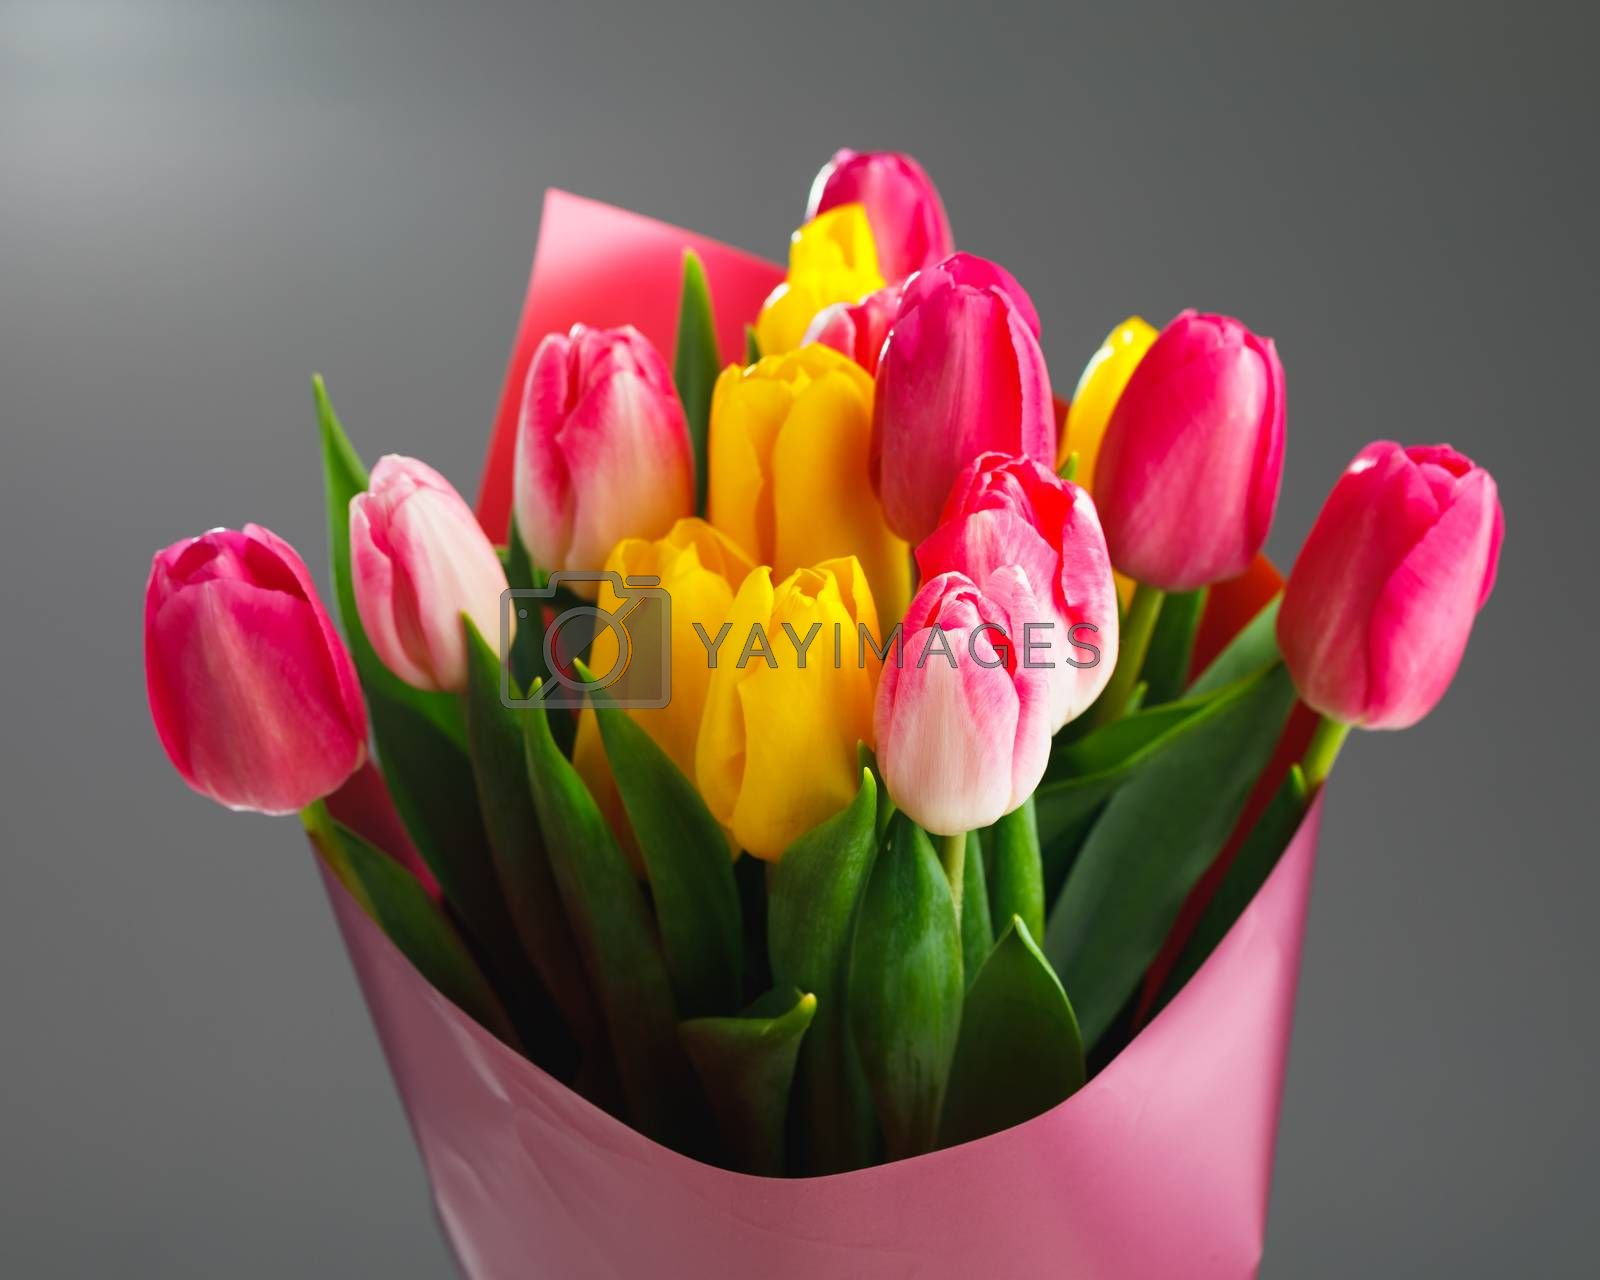 tulip flowers bouquet, close-up view, gray background